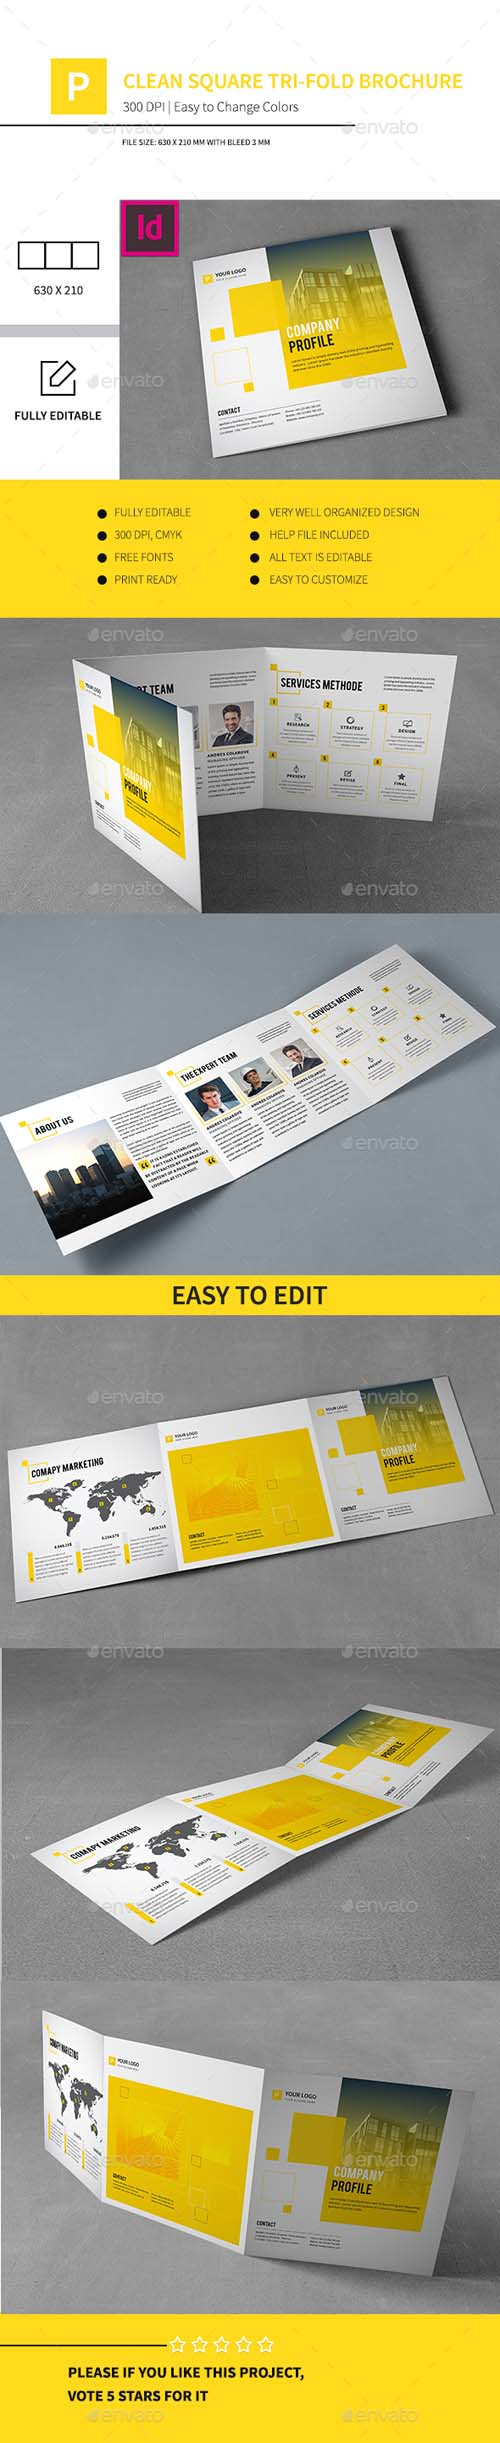 Clean Square Tri-fold Brochure 13482396